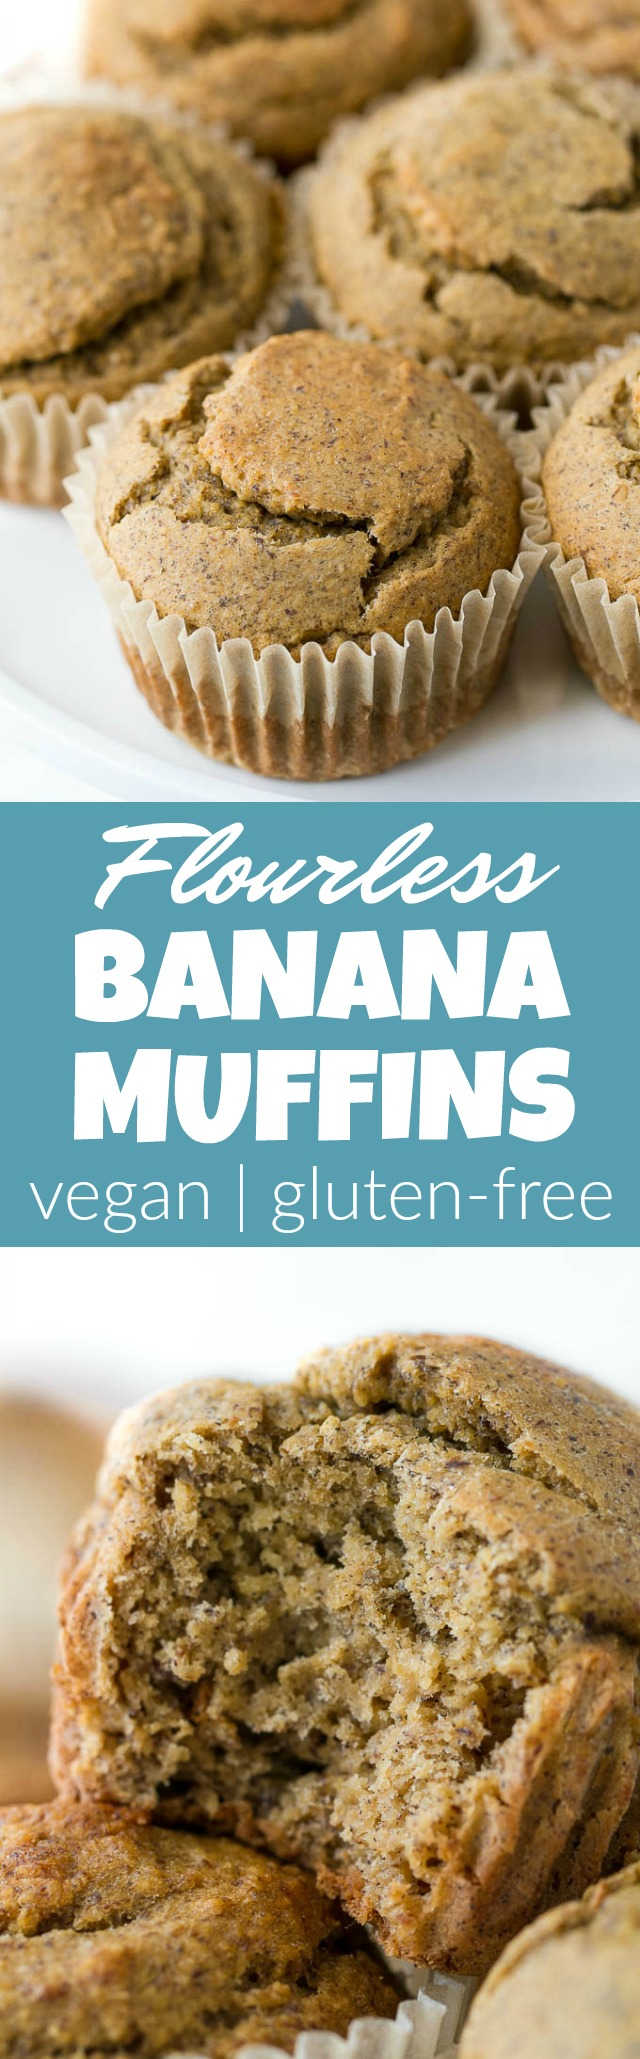 Flourless Vegan Banana Muffins -  so light, tender, and loaded with flavour, you'd never know they were made without flour, oil, eggs, or refined sugar!! | runningwithspoons.com #vegan #glutenfree #recipe #snack #breakfast #healthy